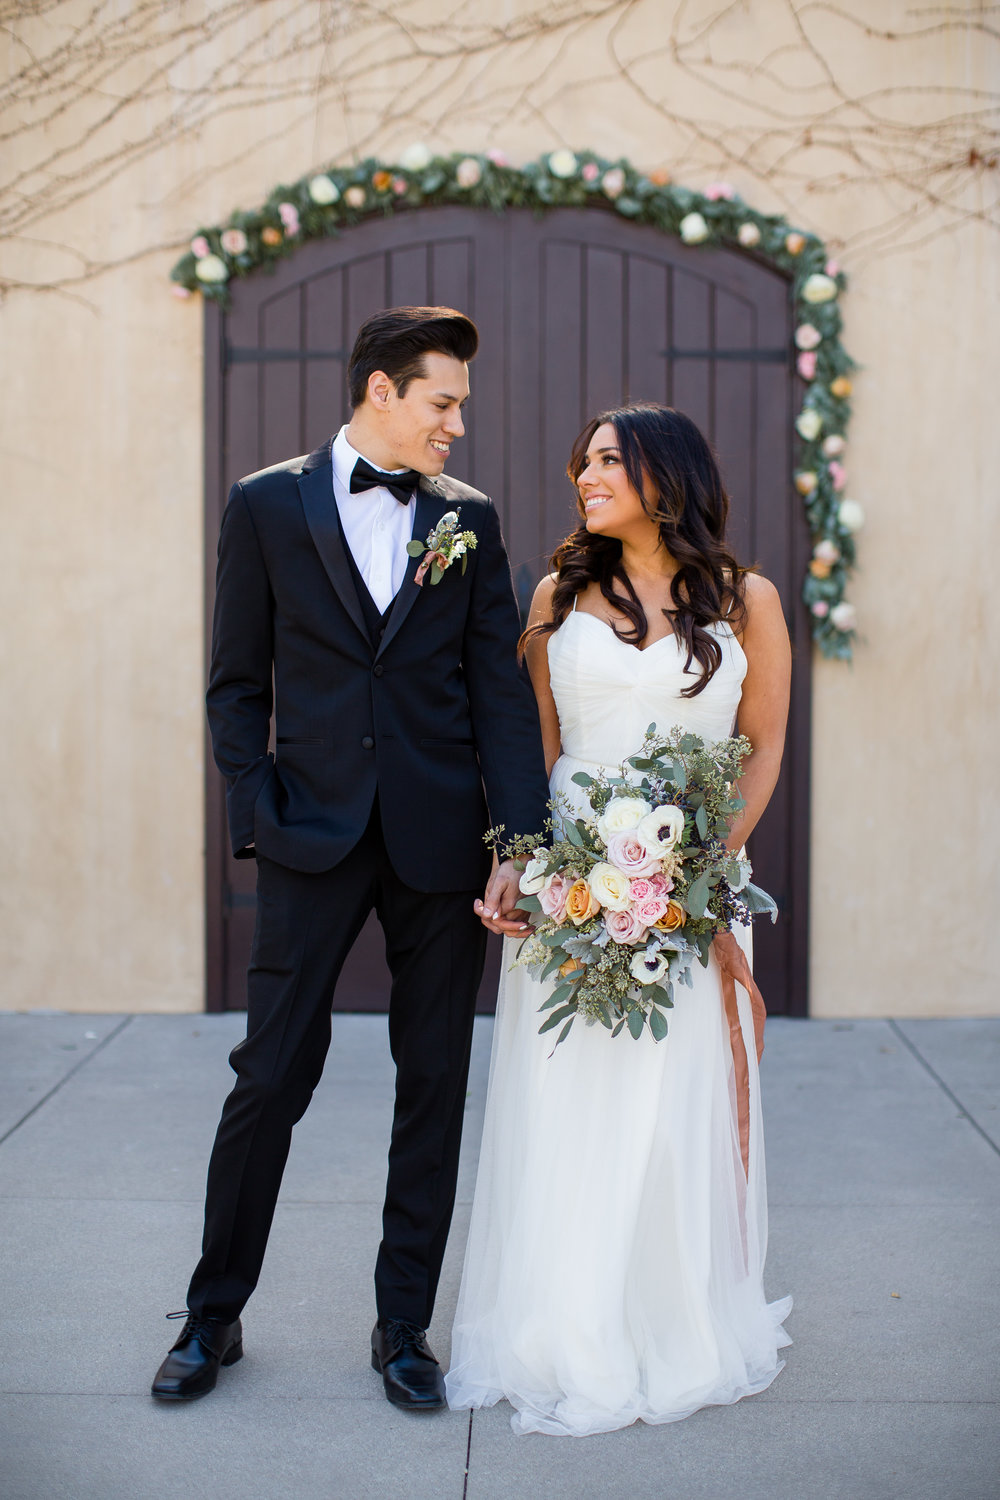 www.santabarbarawedding.com | Los Robles Greens | Events by Fran | Chelsea Elizabeth | Bride and Groom